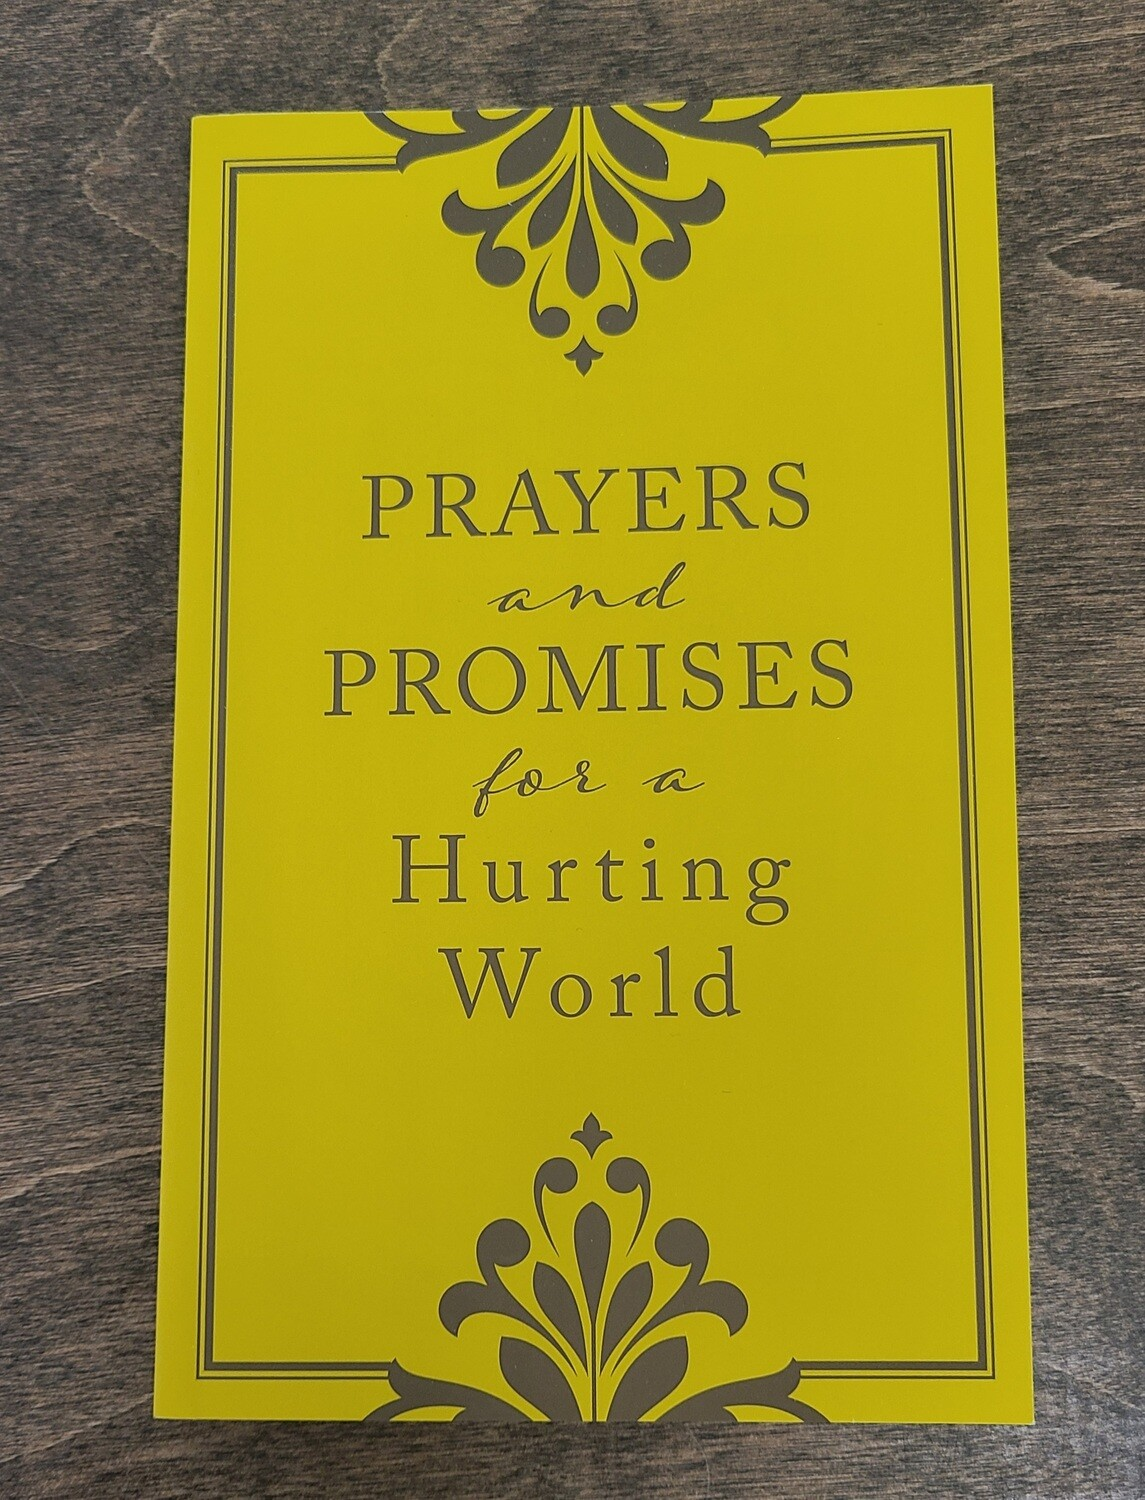 Prayers and Promises for a Hurting World by Laura Freudig